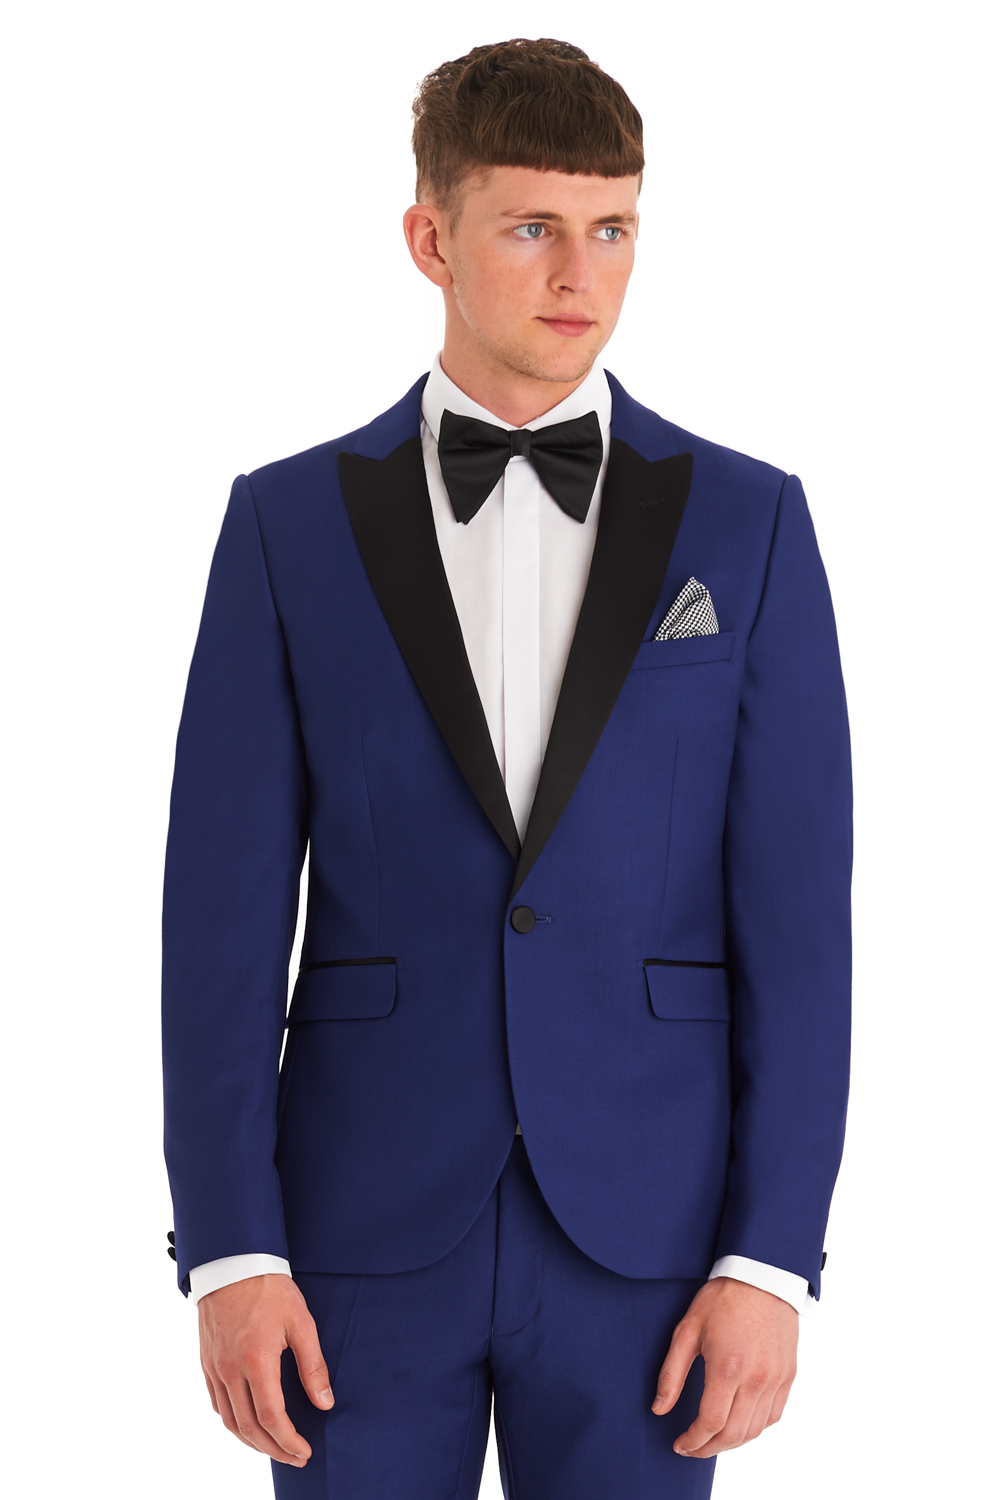 4.1 2015 Fashion Bridegroom Blue Dinner jacket Prom suits men suits ...